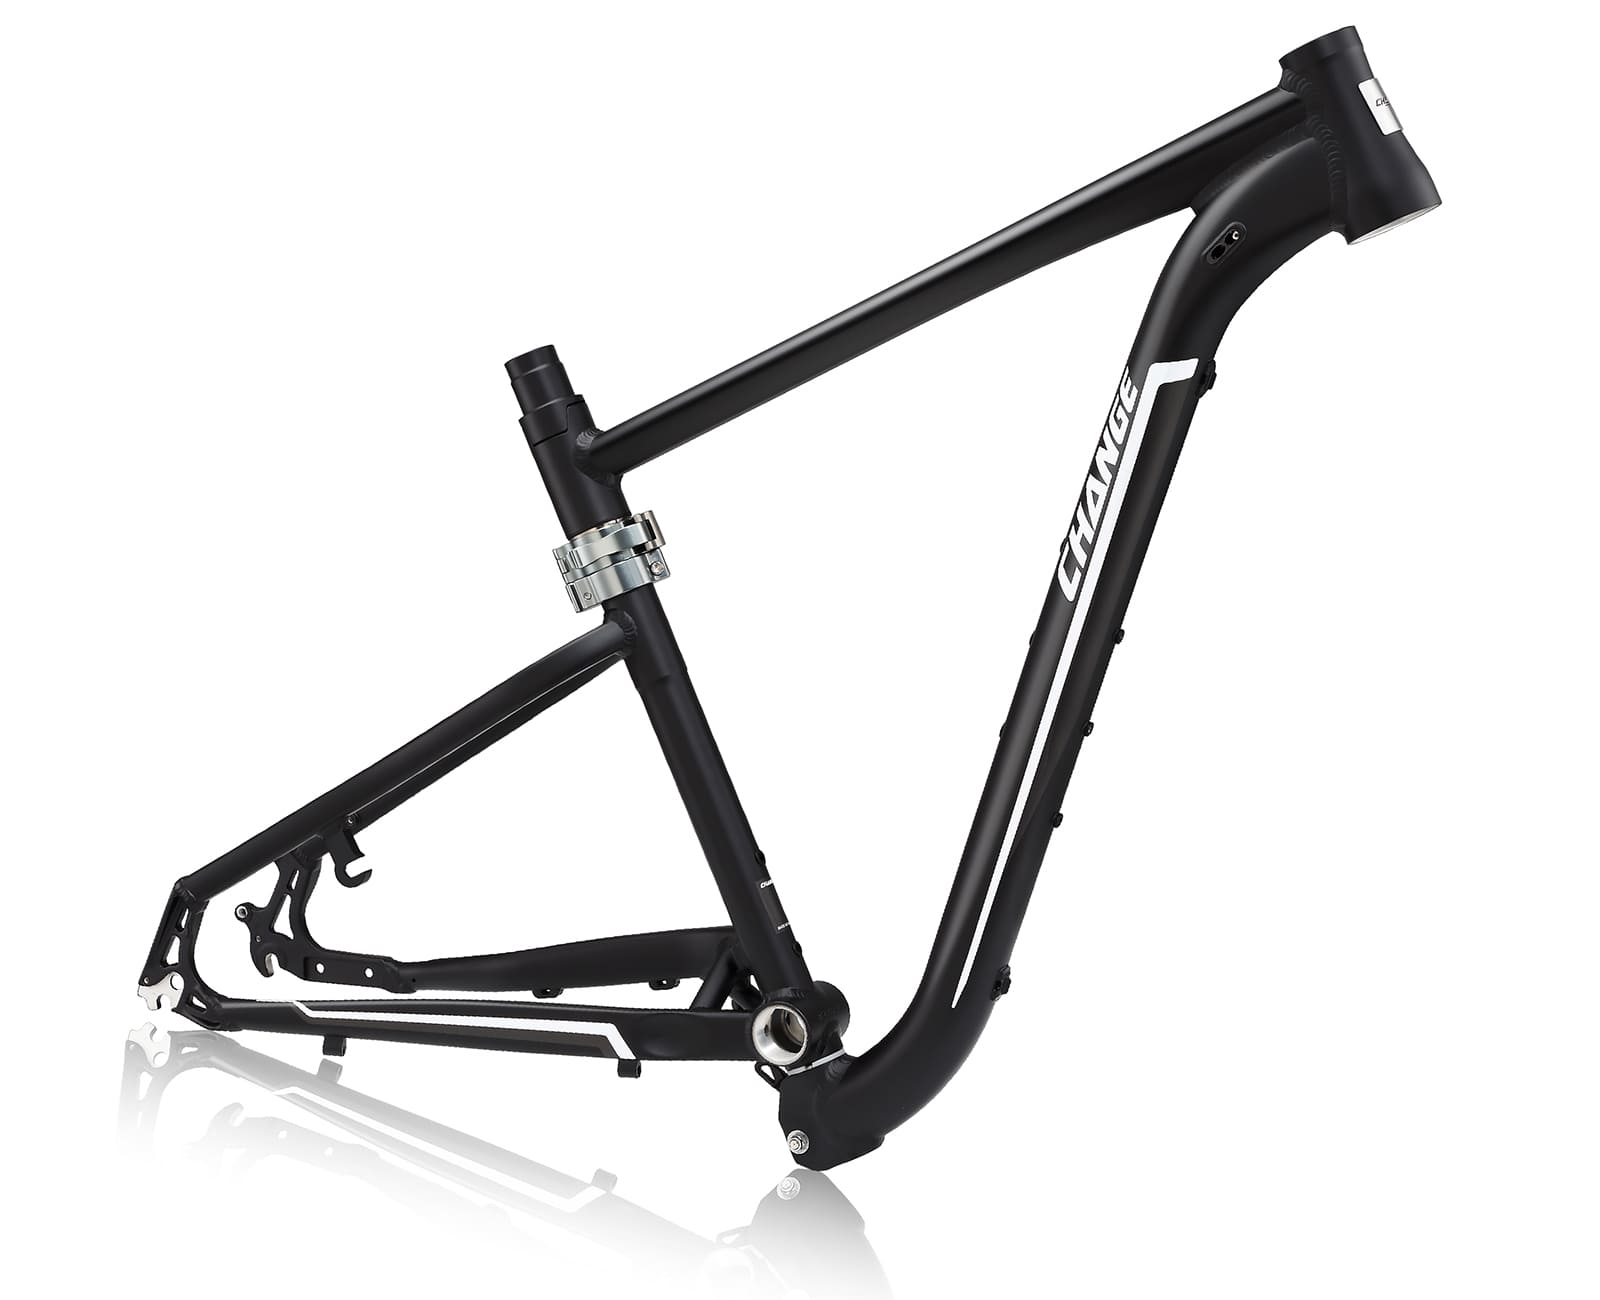 27.5 mtb folding frame changebike df-833k